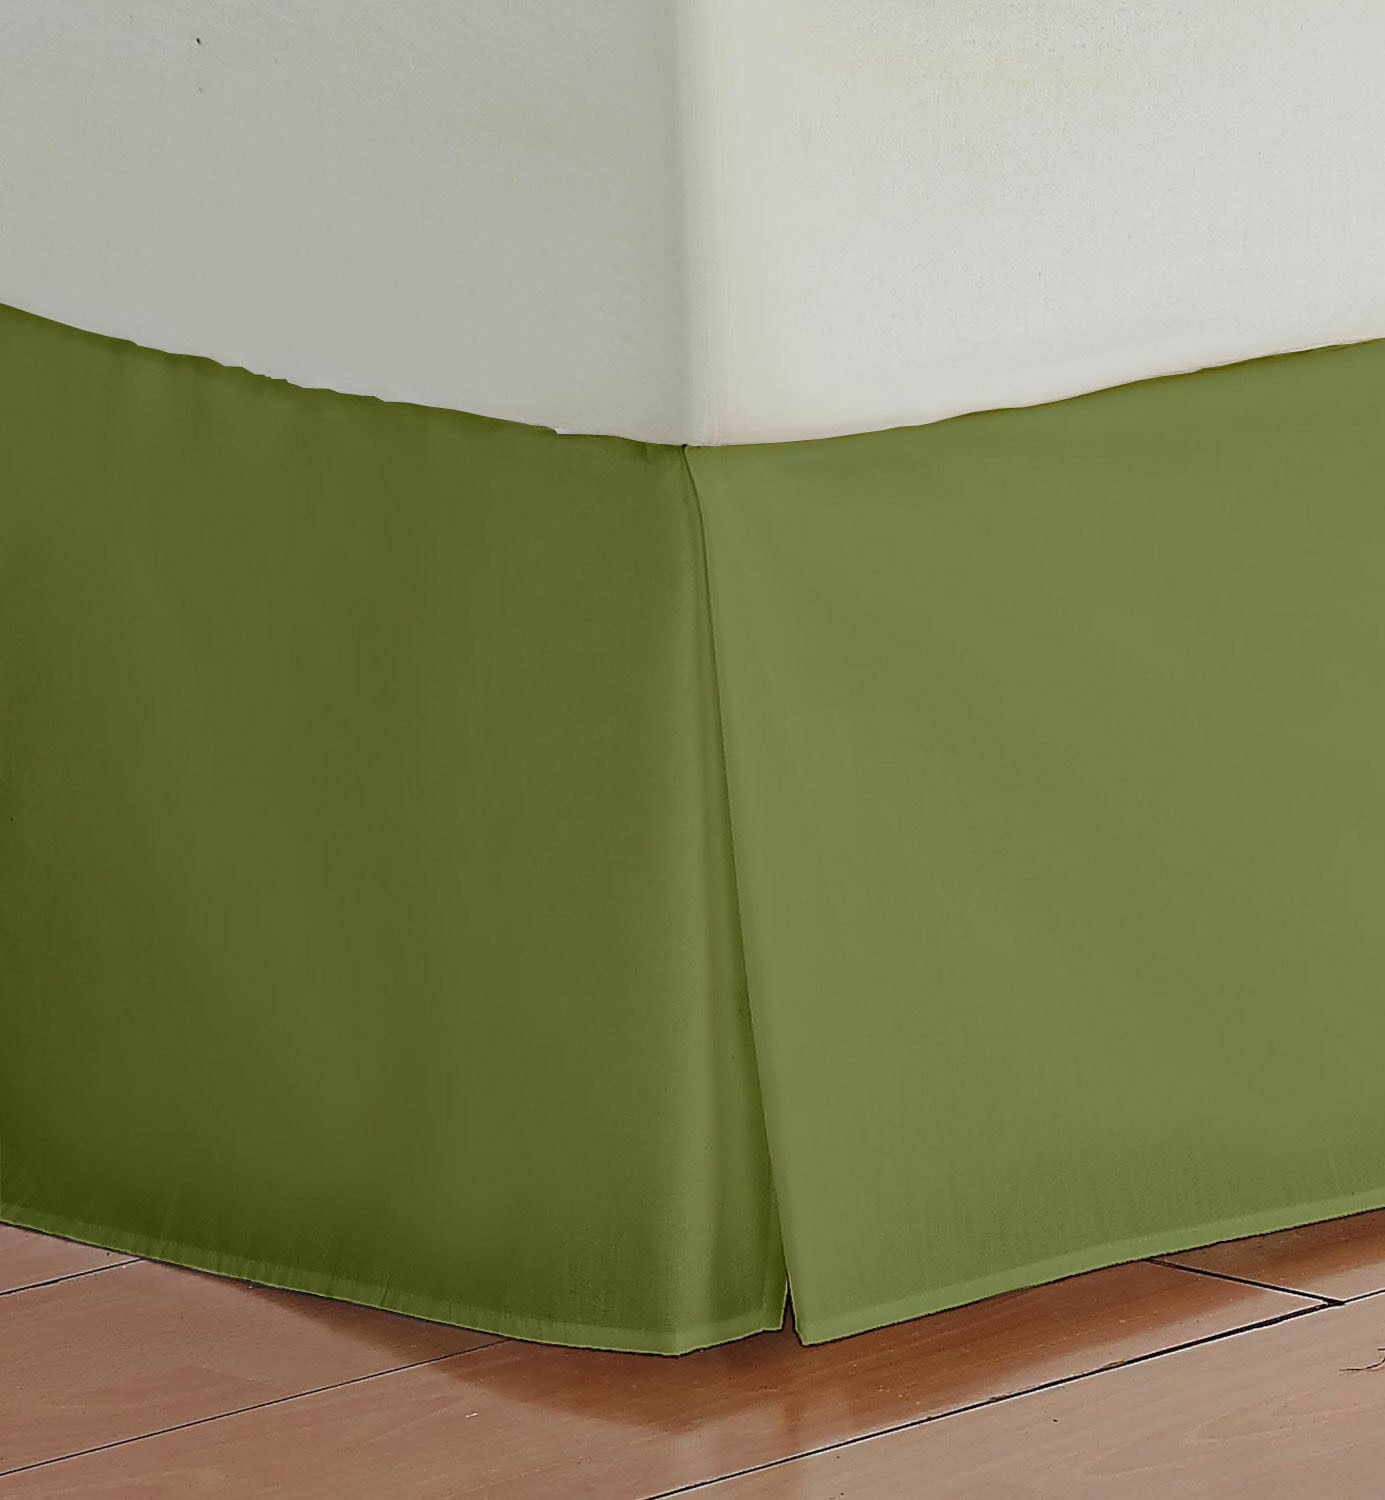 1000TC Olive Solid Bed Skirt Select Drop Length All US Size 100% Egy. cotton